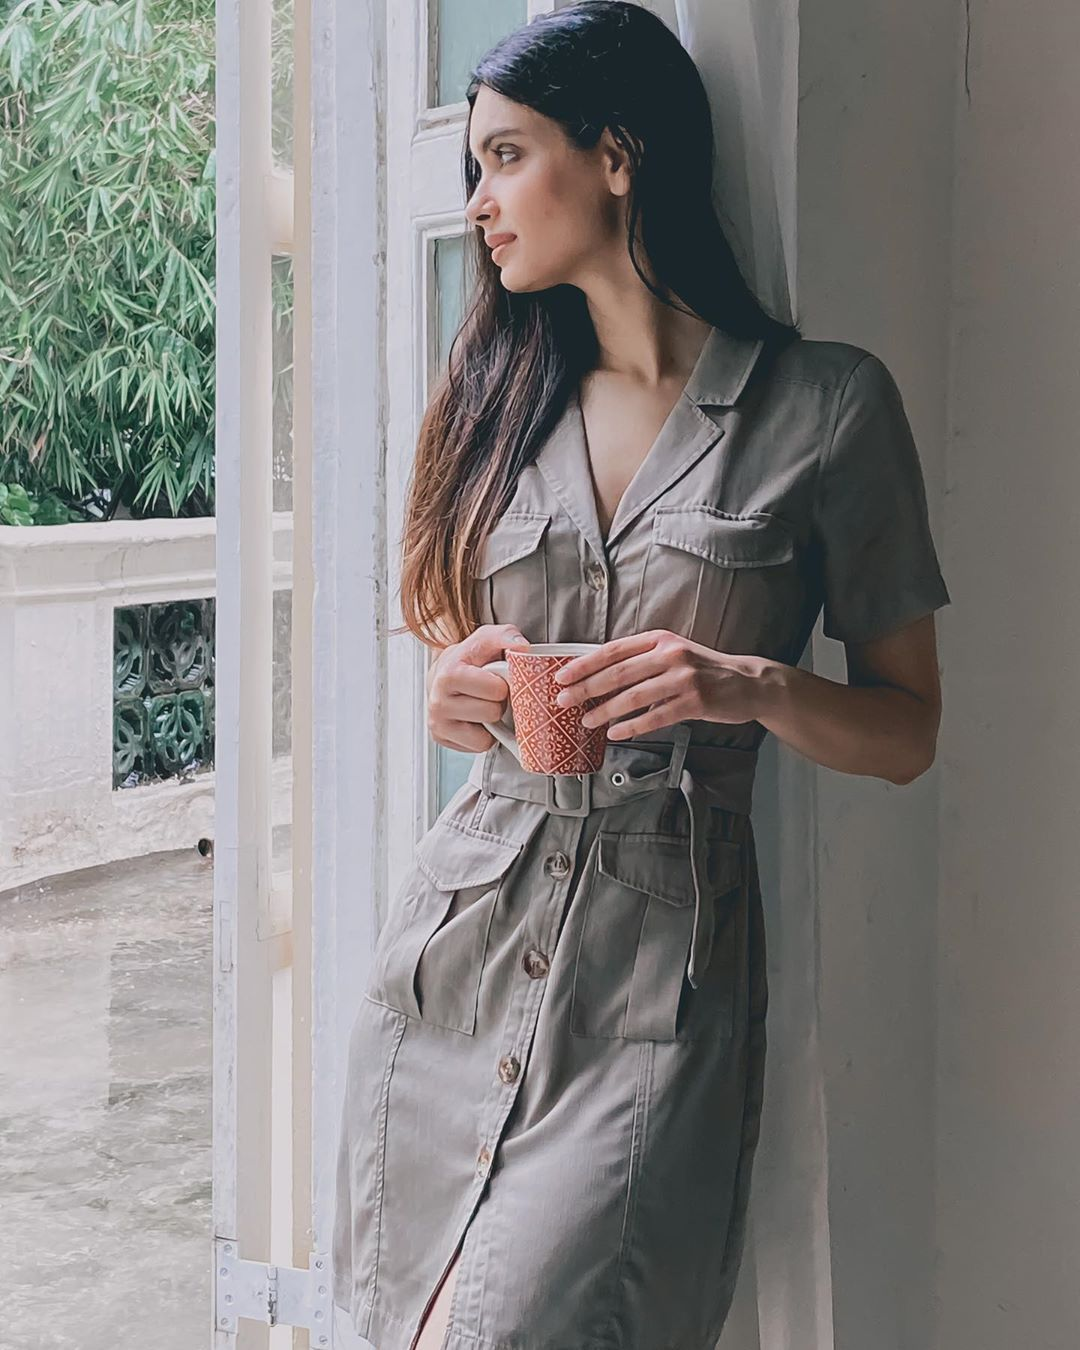 diana penty on instagram time teawithd dress forevernew india marksequ in 2020 diana penty fashion diana pinterest